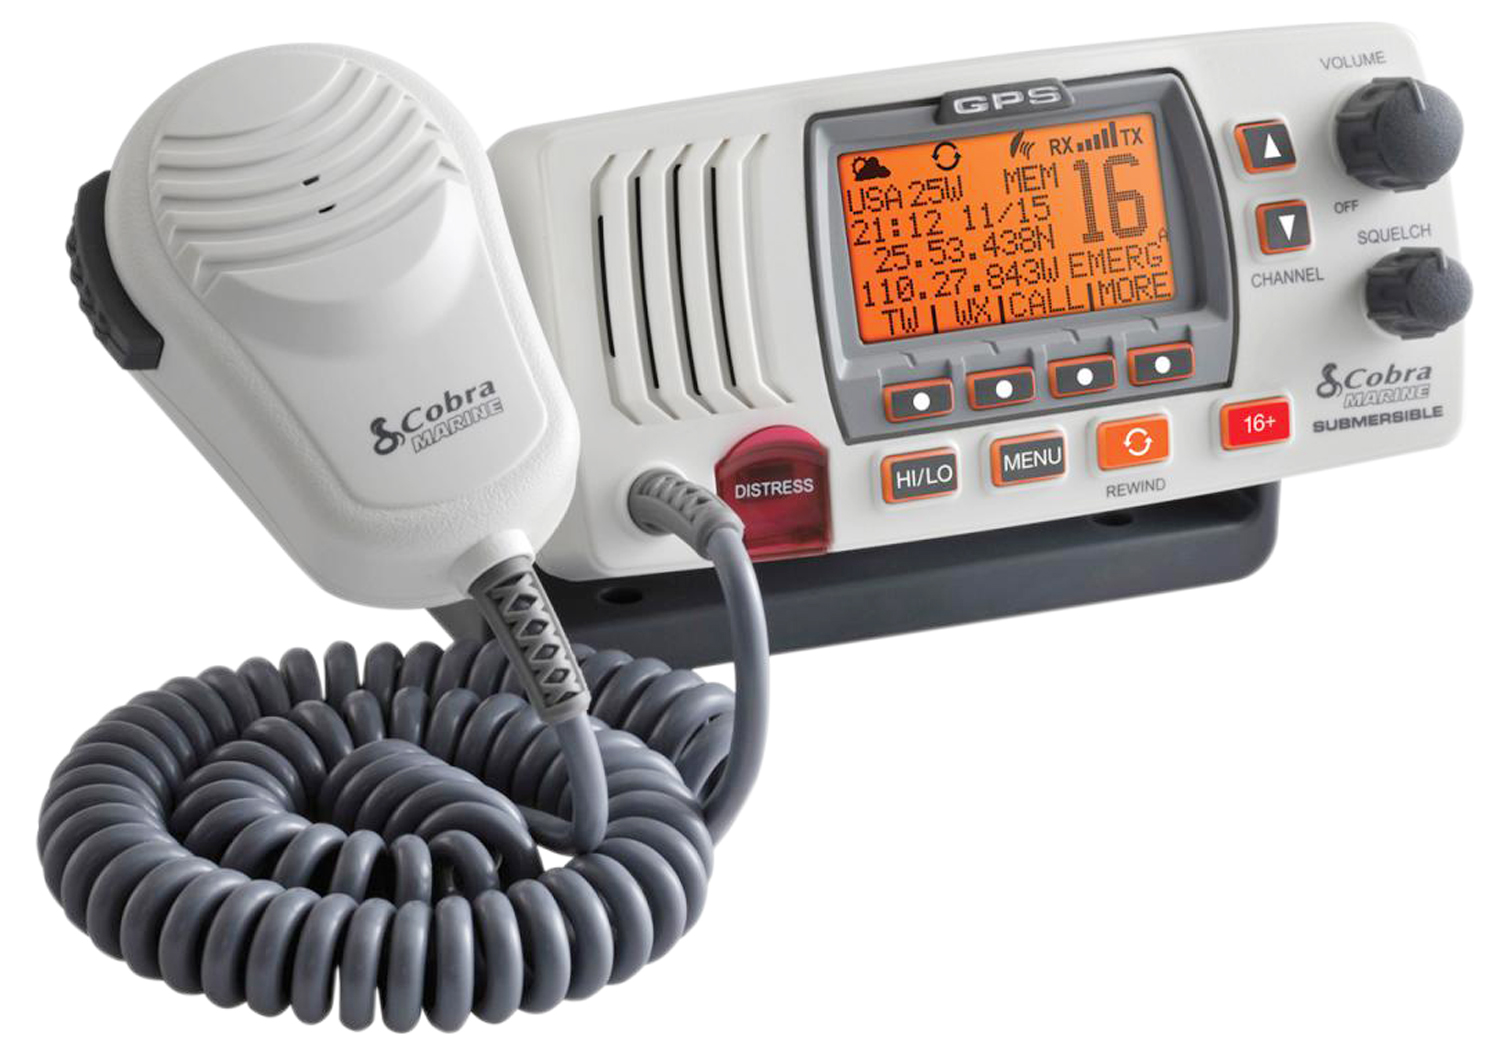 COBRA MRF77WGPS CLASS D 25 WATT IPX8/JIS8 SUBMERSIBLE VHF MARINE RADIO WITH GPS - IN WHITE